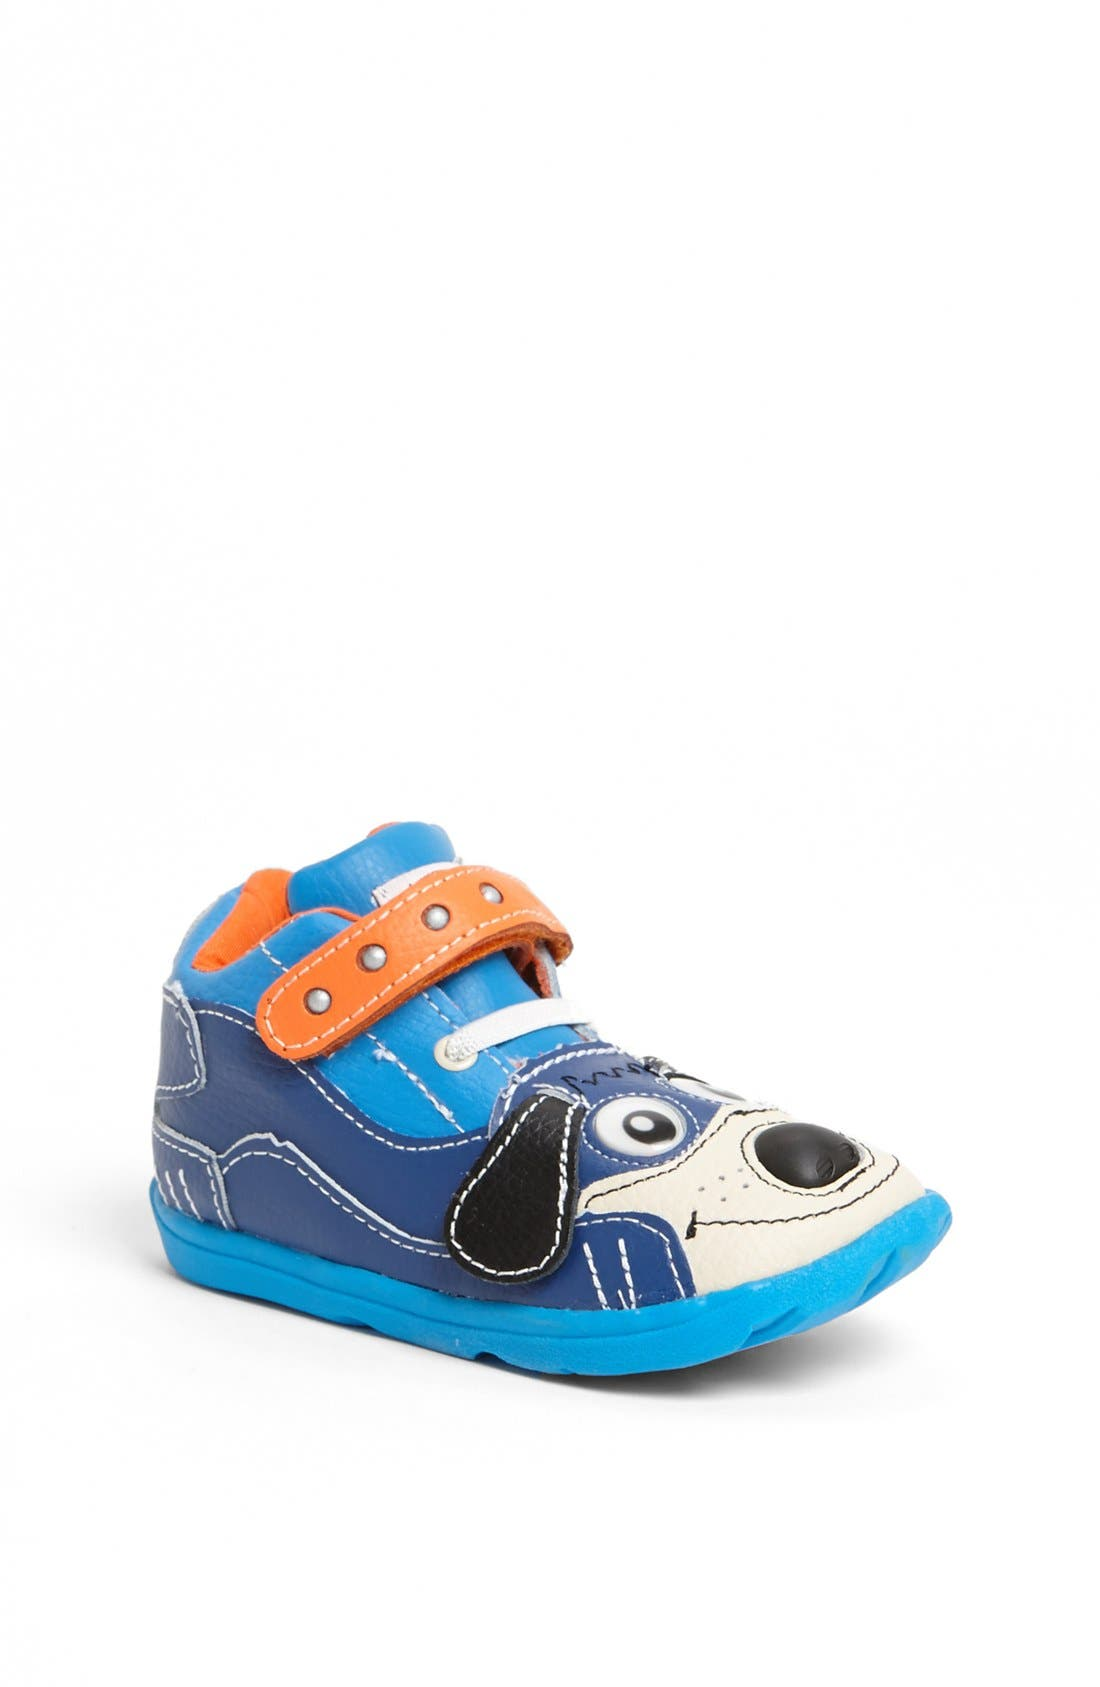 Main Image - Zooligans™ 'Sparky the Puppy' Sneaker (Baby, Walker, Toddler & Little Kid)